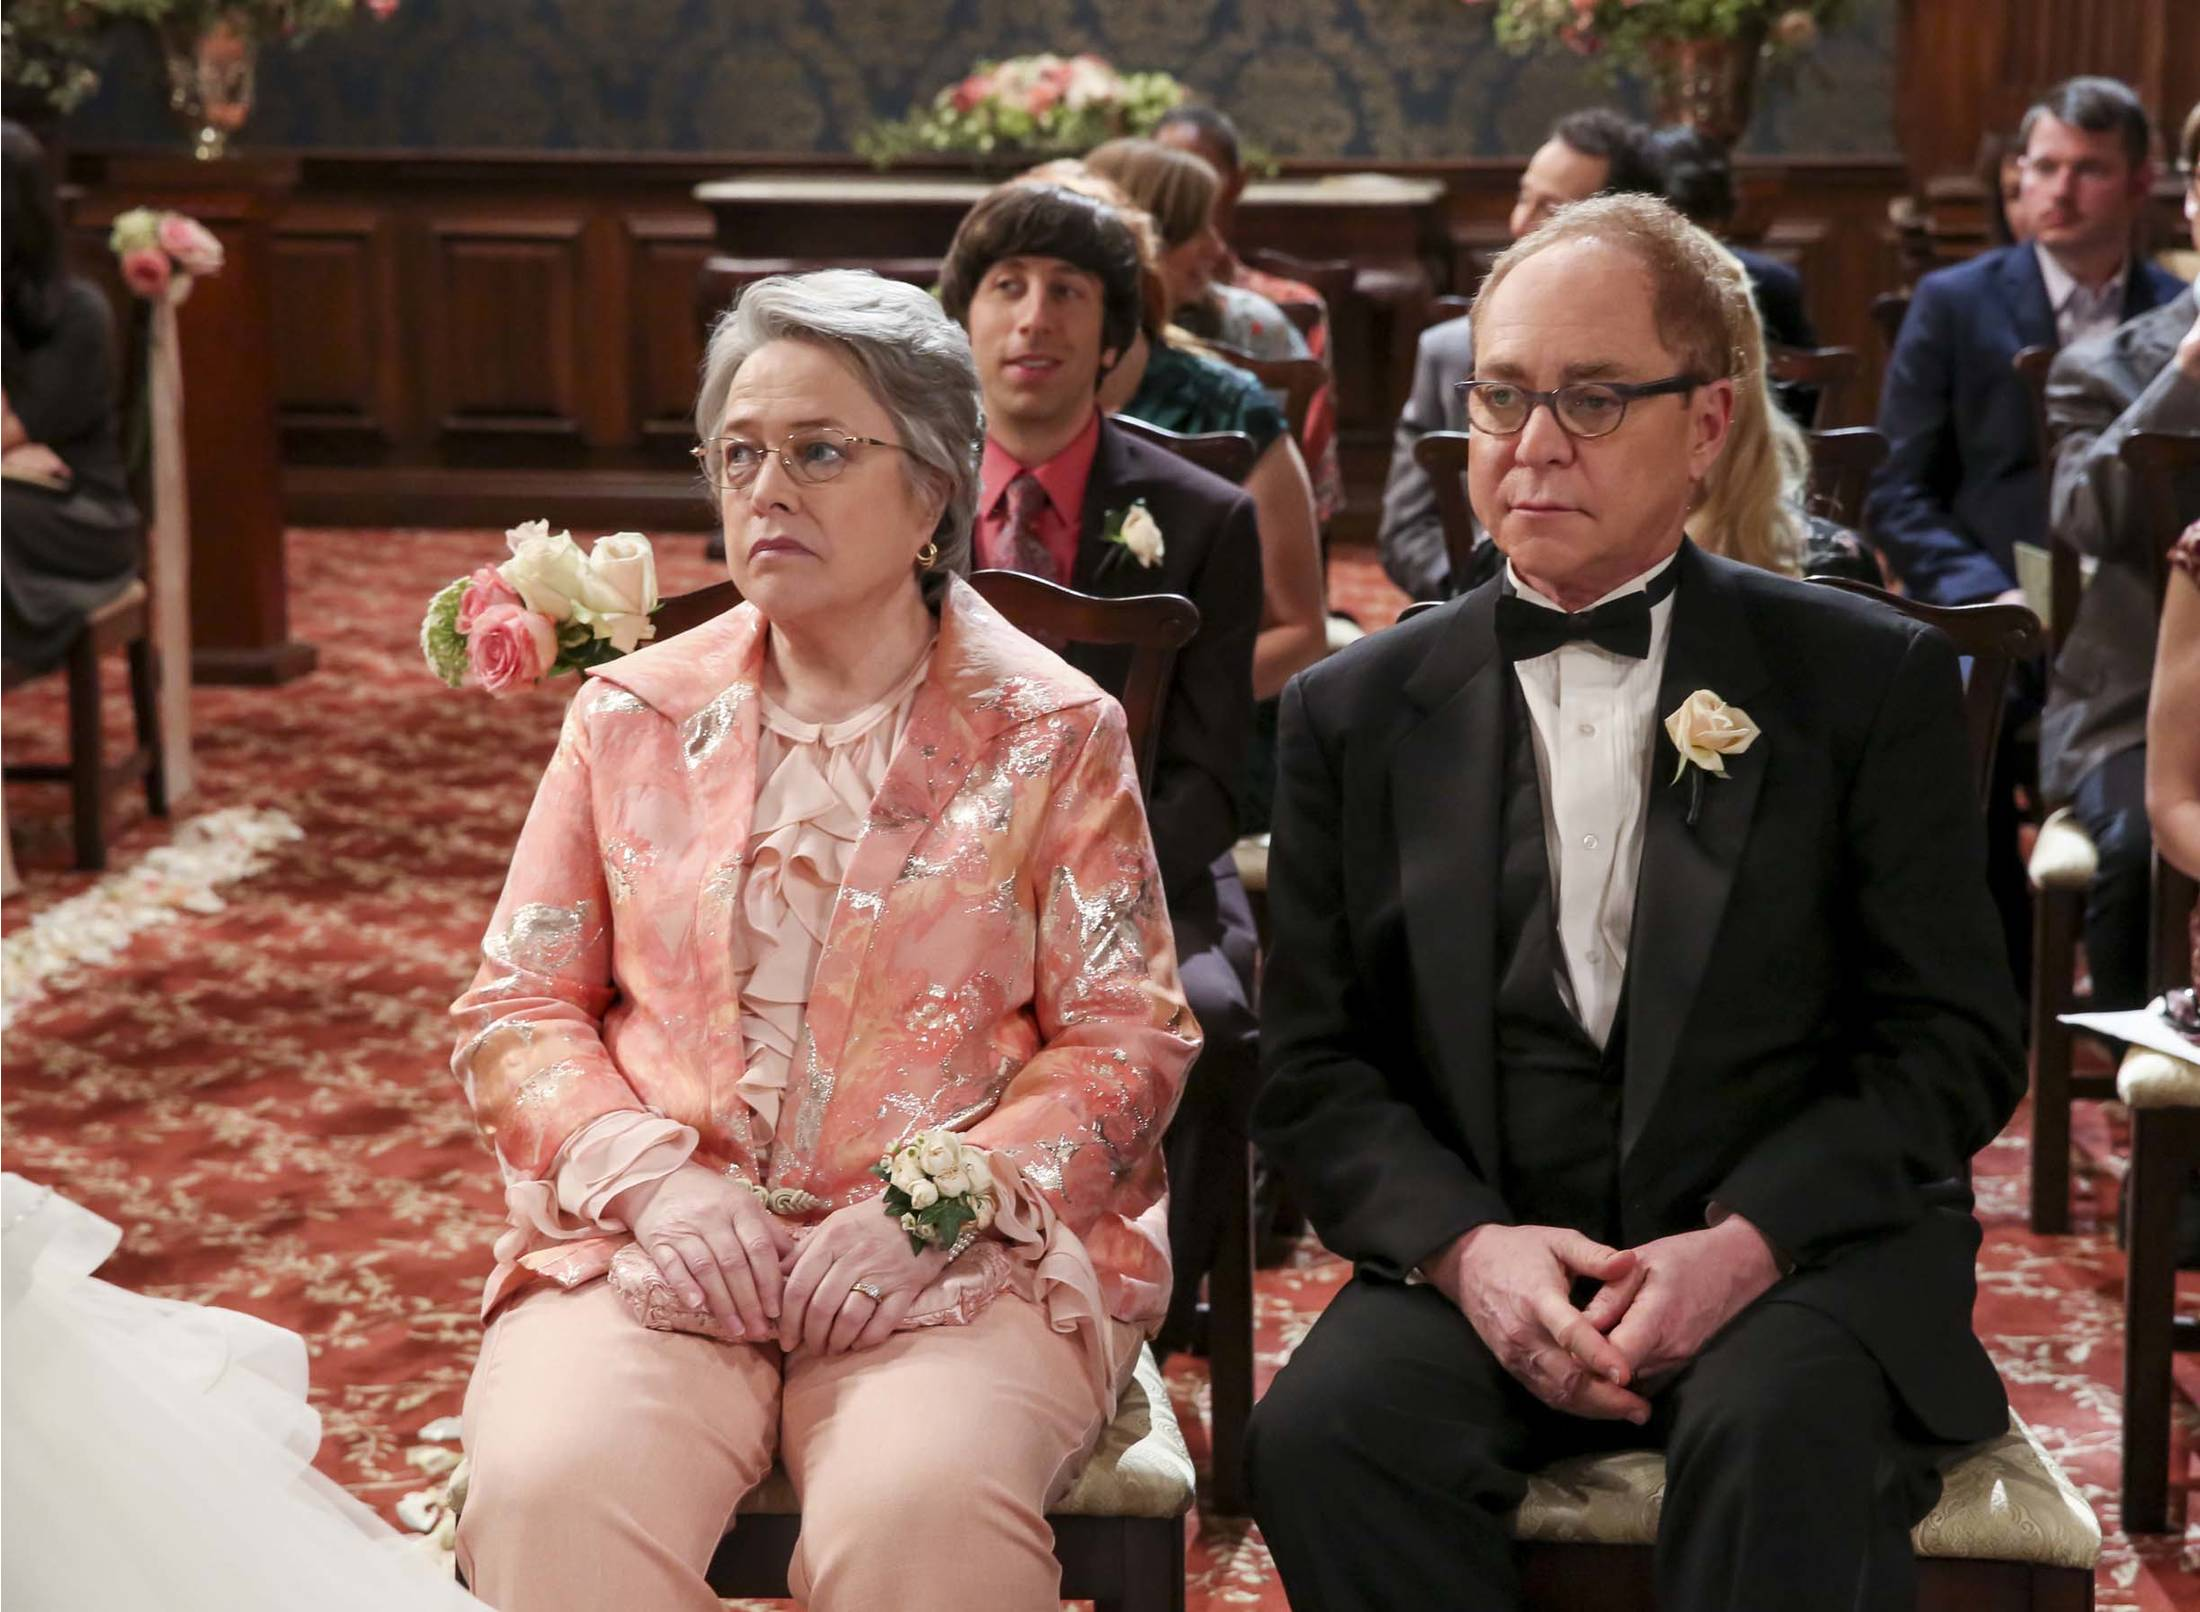 """""""The Bow Tie Asymmetry"""" - Pictured: Mrs. Fowler (Kathy Bates) and Mr. Fowler (Teller). When Amy's parents and Sheldon's family arrive for the wedding, everybody is focused on making sure all goes according to plan -- everyone except the bride and groom, on the 11th season finale of THE BIG BANG THEORY, Thursday, May 10 (8:00-8:31 PM, ET/PT) on the CBS Television Network. Photo: Michael Yarish/CBS ©2018 CBS Broadcasting, Inc. All Rights Reserved."""